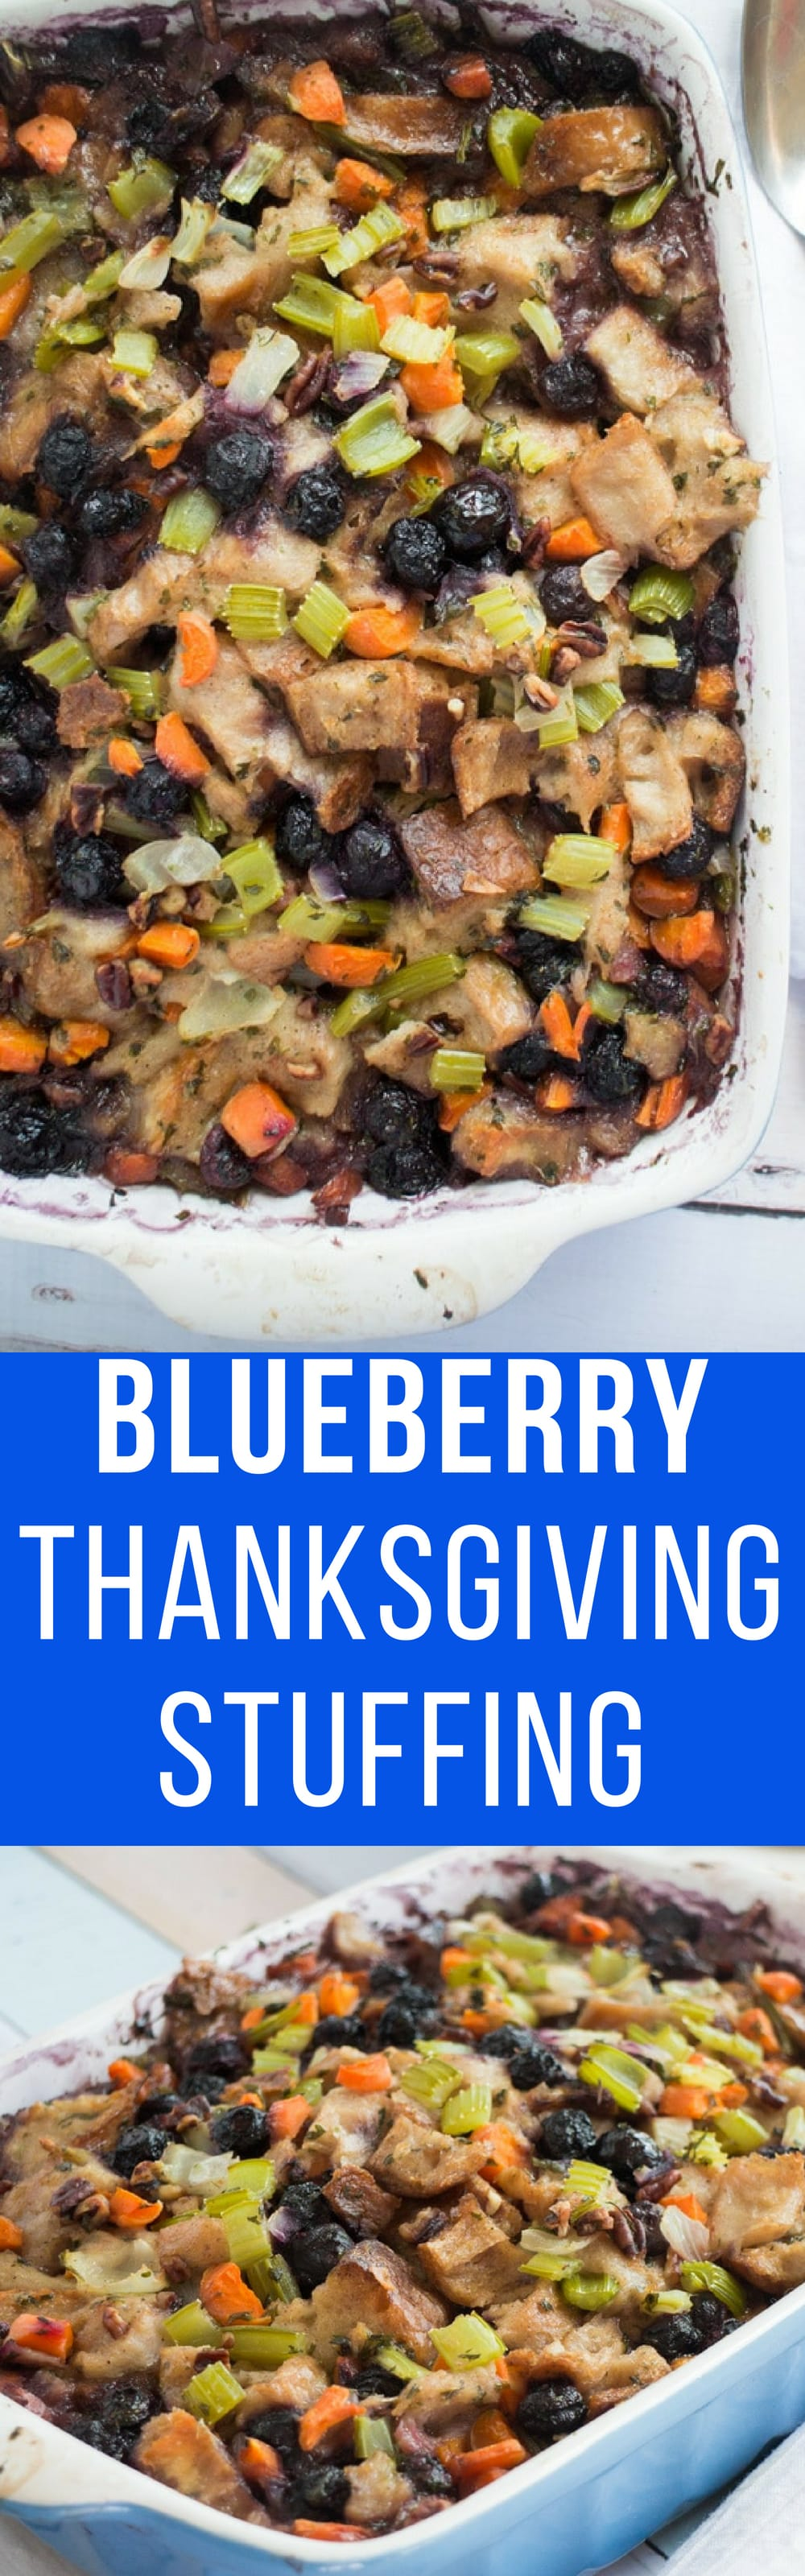 BLUEBERRY Thanksgiving Stuffing recipe! Traditional homemade vegetarian stuffing with sweet blueberries added in! This comes from a Grandma's vintage cookbook so you know it's going to be the best! It's easy to make and you can make it ahead of time to freeze!